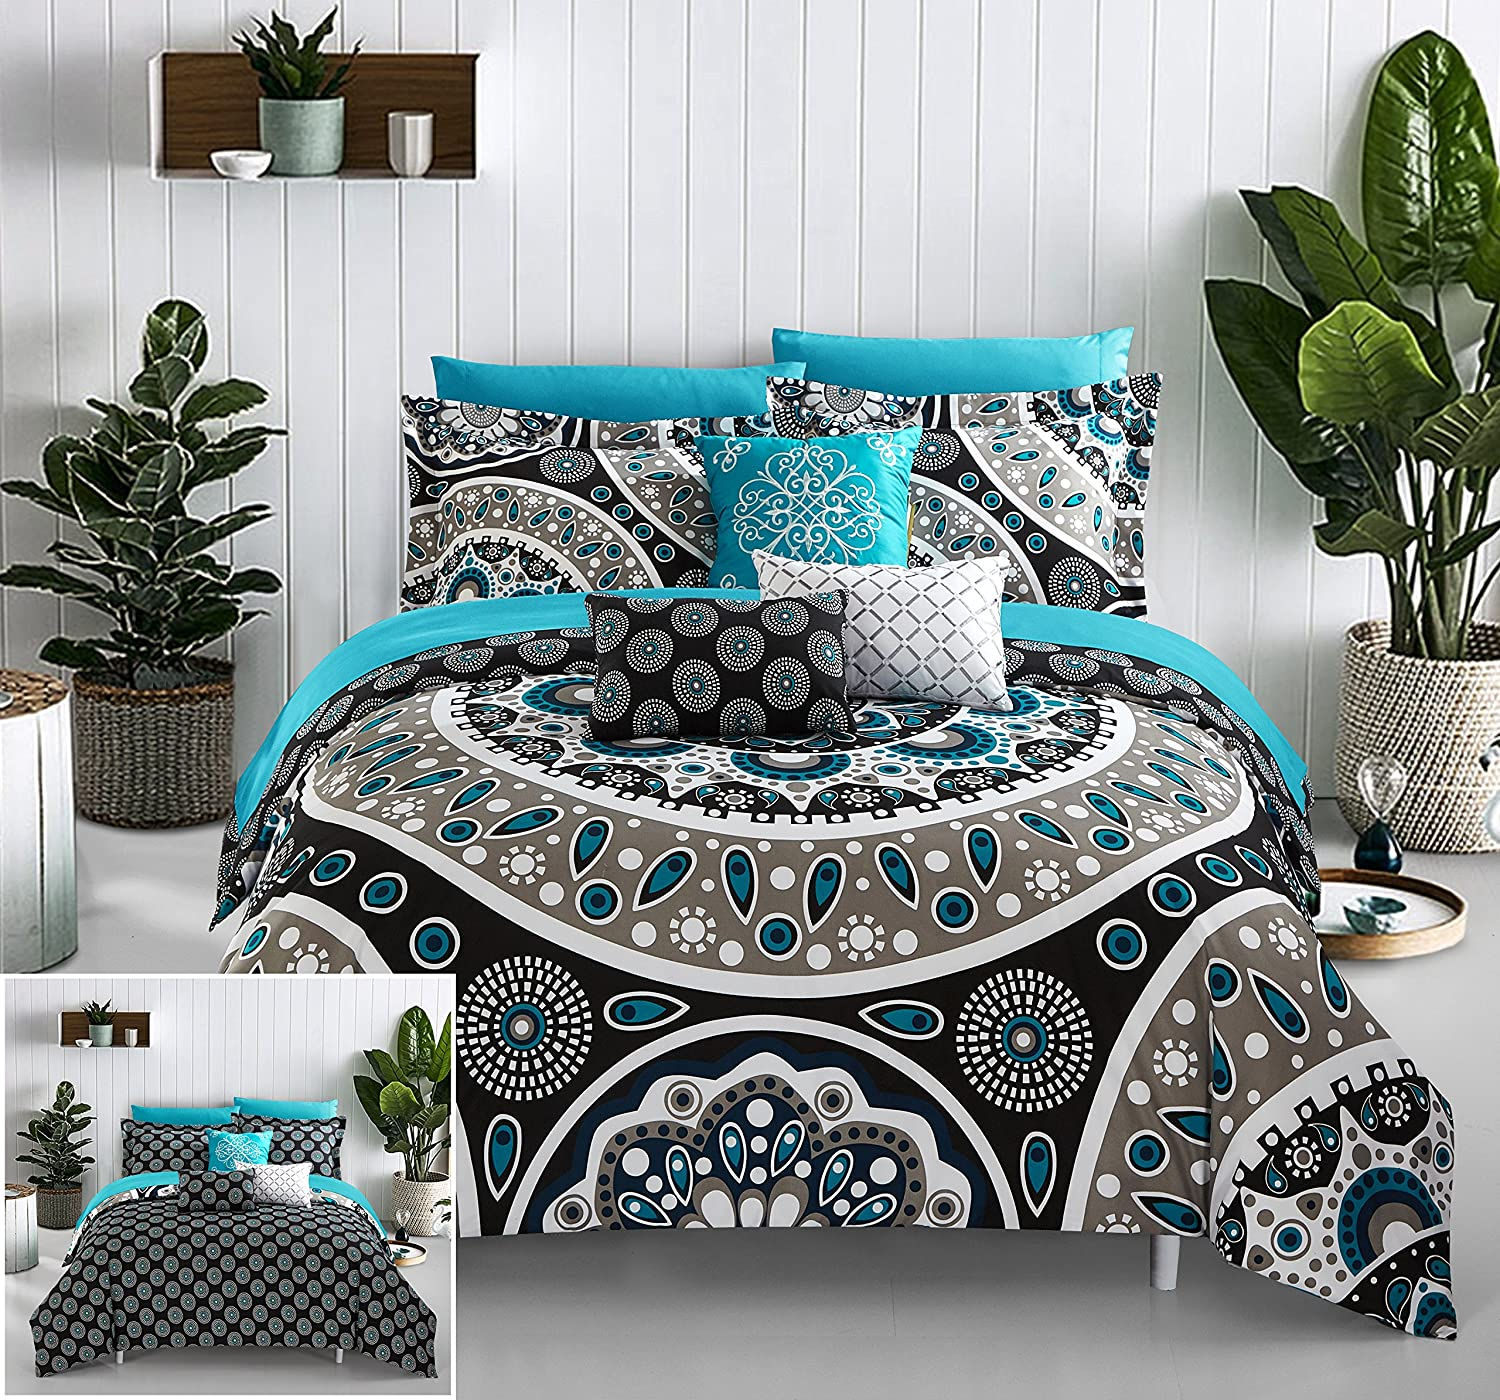 Chic Home Mornington 8 Piece Reversible Comforter Bag Large Scale Paisley Print Contemporary Geometric Pattern Bedding with Sheet Set Decorative Pillows Shams Included, Twin, Black